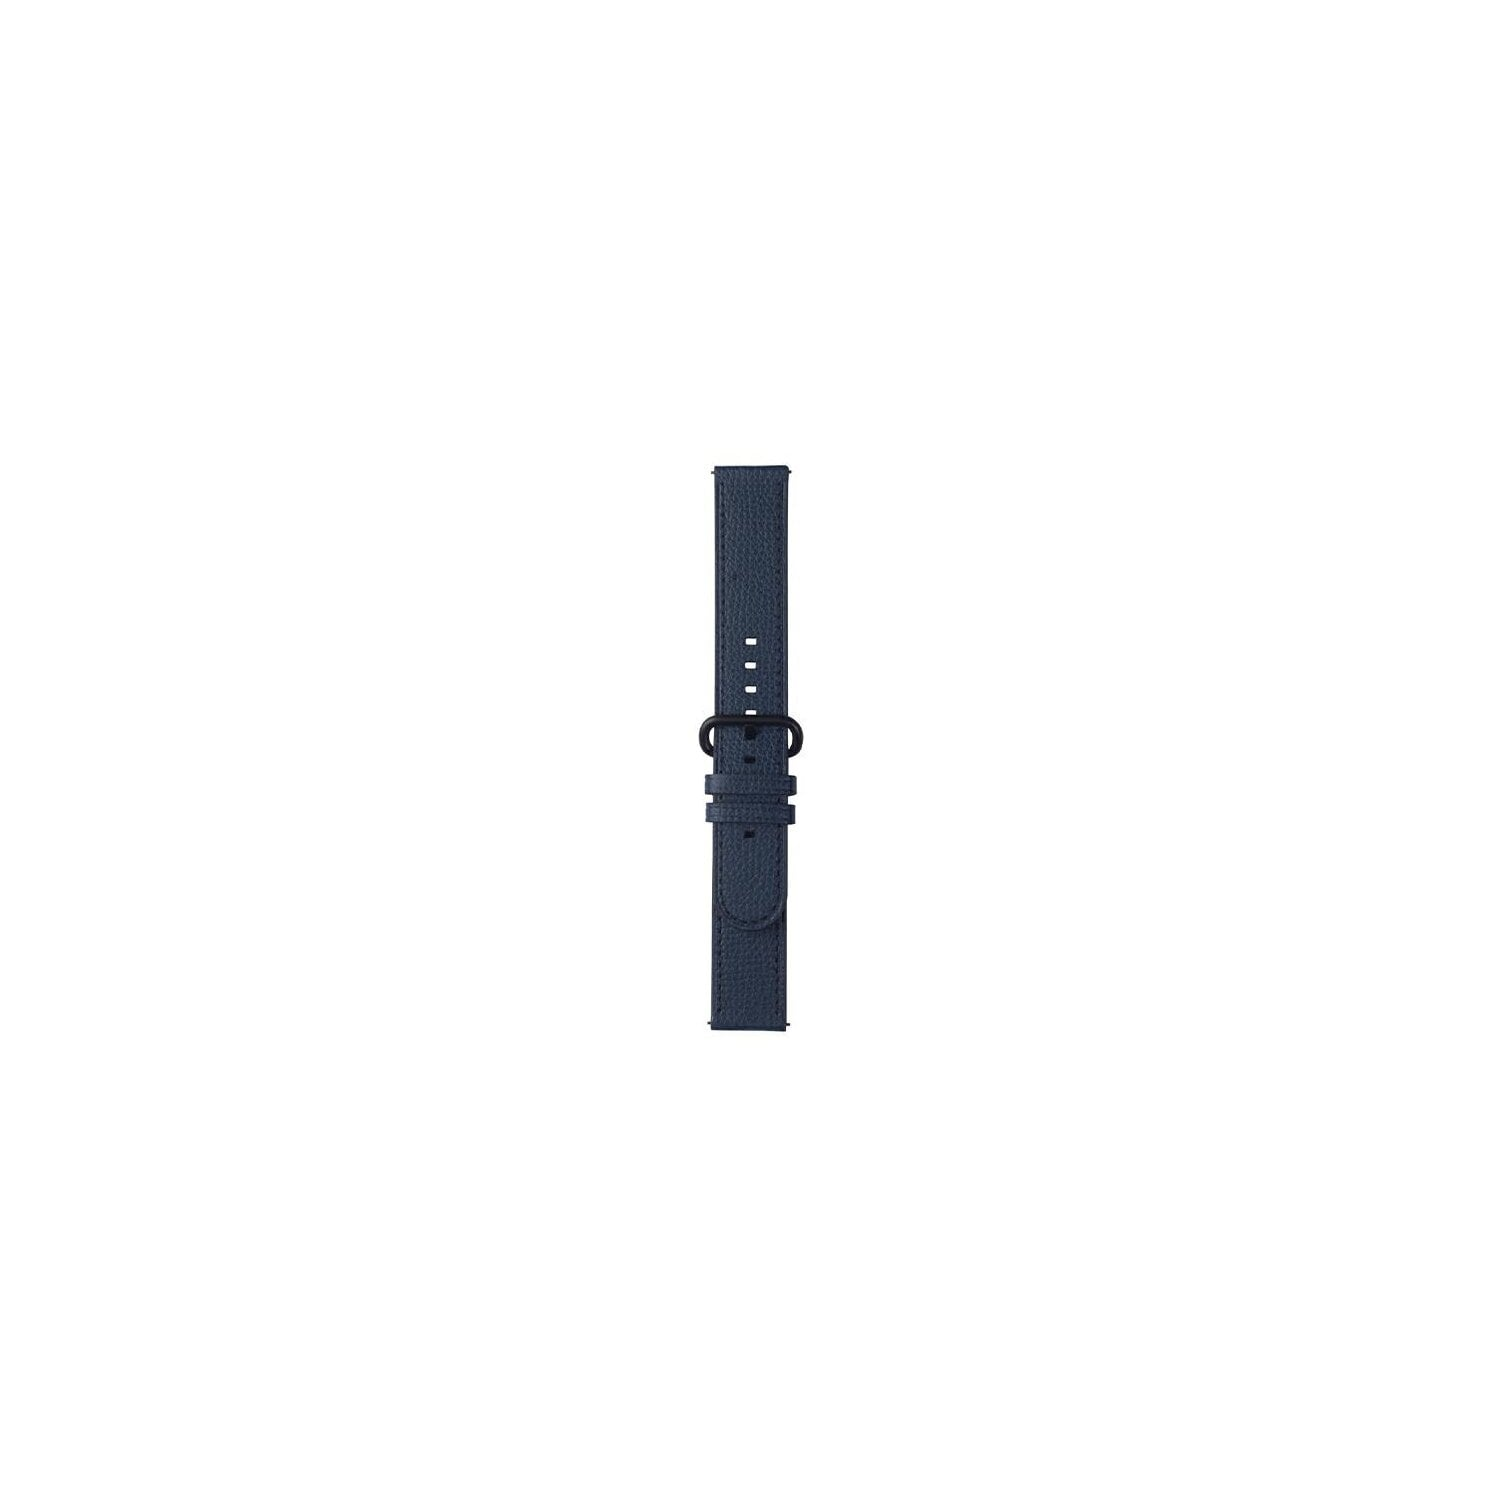 Pasek do smartwatcha SAMSUNG Essence dla Galaxy Watch Active/Active2 20mm Granatowy GP-TYR820BRBNW